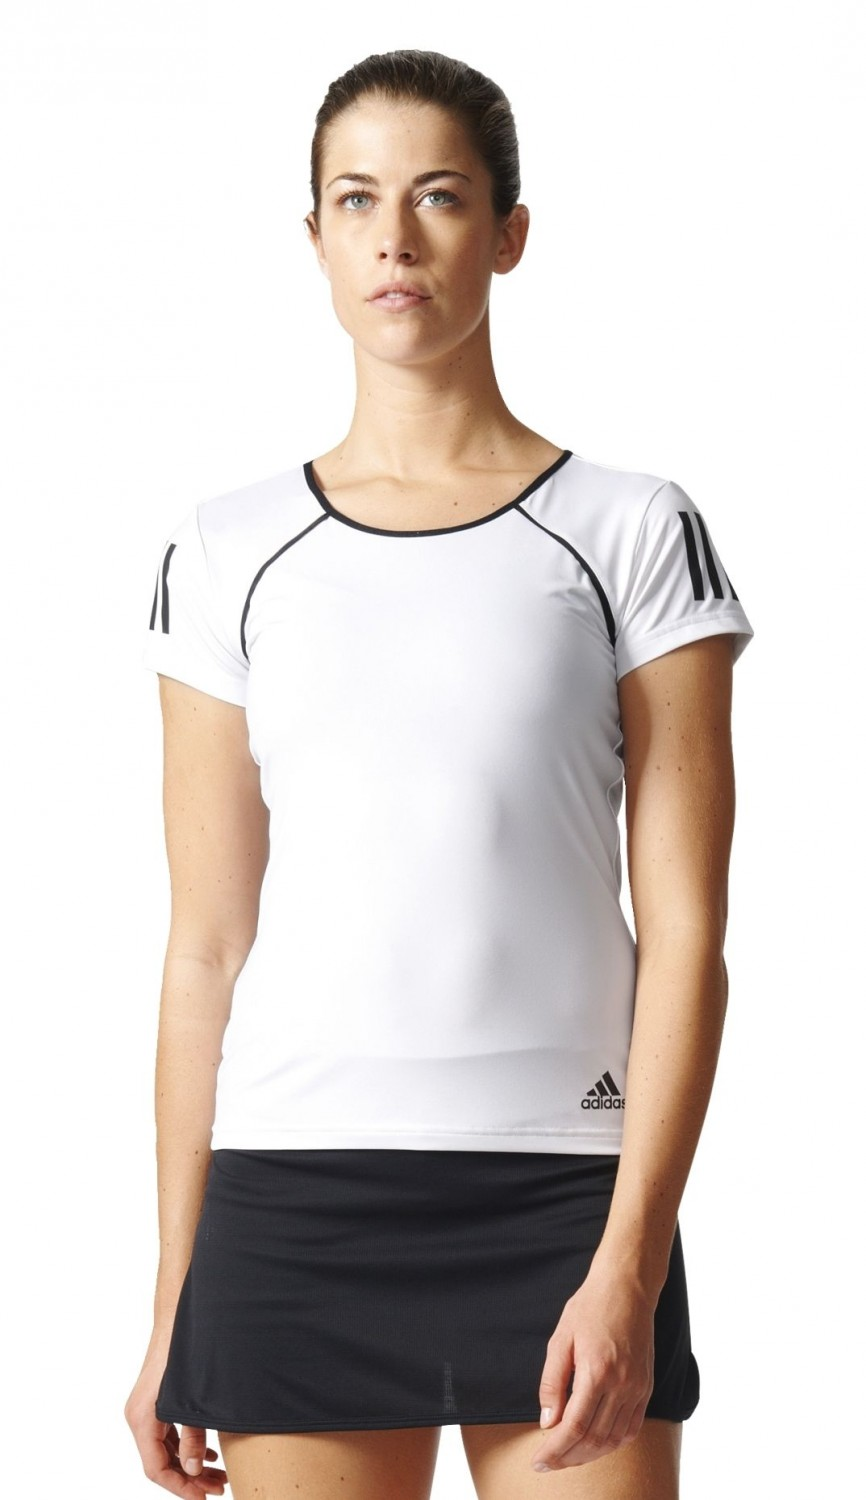 adidas damen tennis trainings shirt club tee weiss schwarz. Black Bedroom Furniture Sets. Home Design Ideas